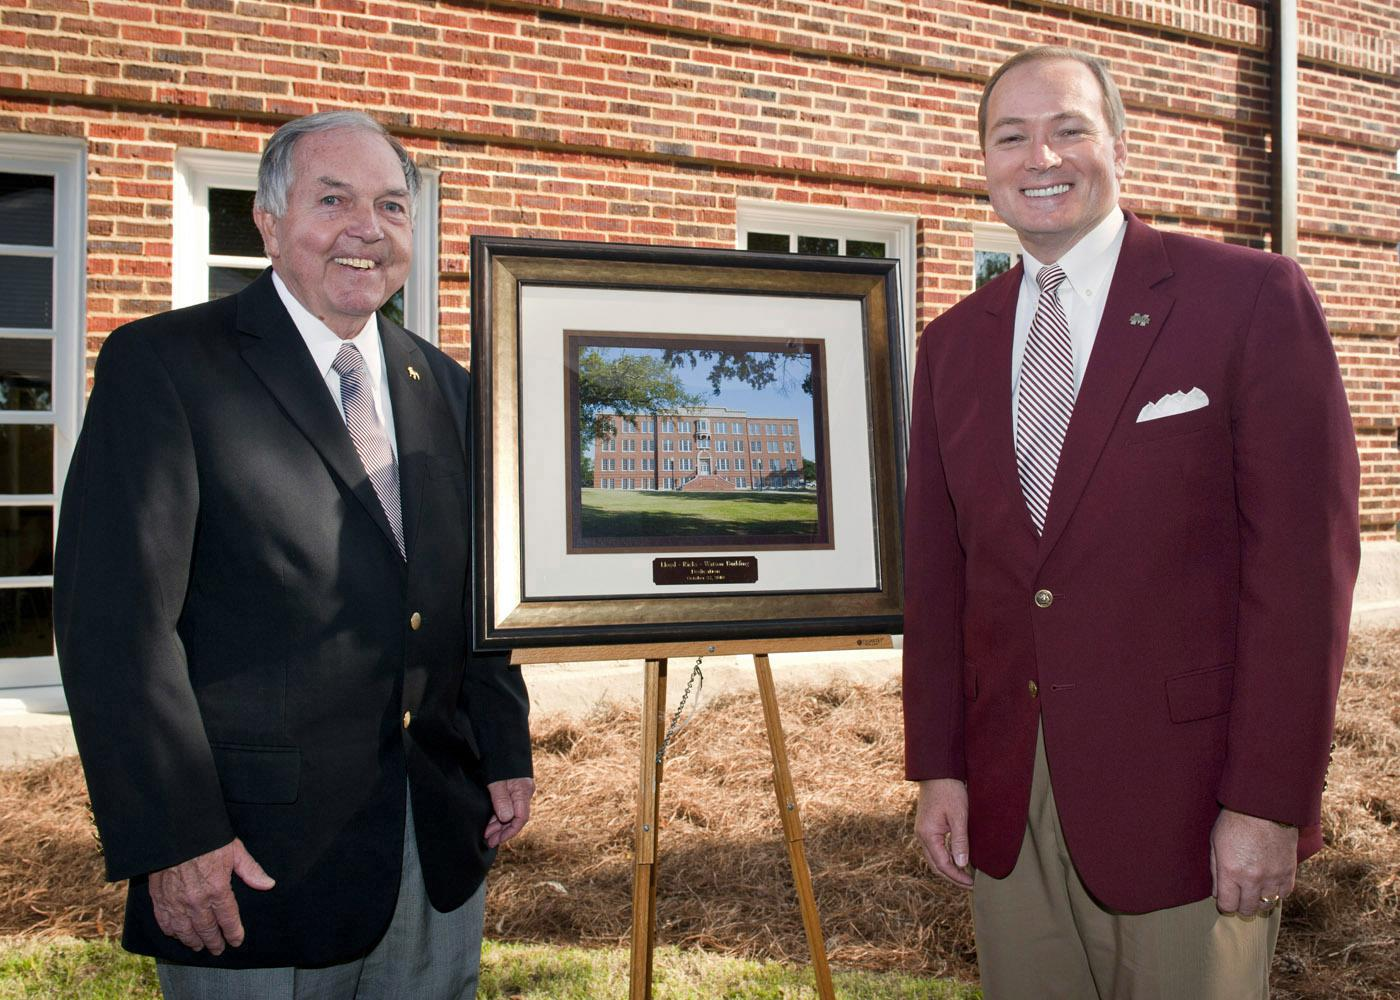 The newly renovated and renamed Lloyd-Ricks-Watson building at Mississippi State University was dedicated on Oct. 23. Vance Watson, left, one of the buildings' namesakes, receives a photo of the building from MSU president Mark Keenum. (Photo by MSU University Relations/Russ Houston)